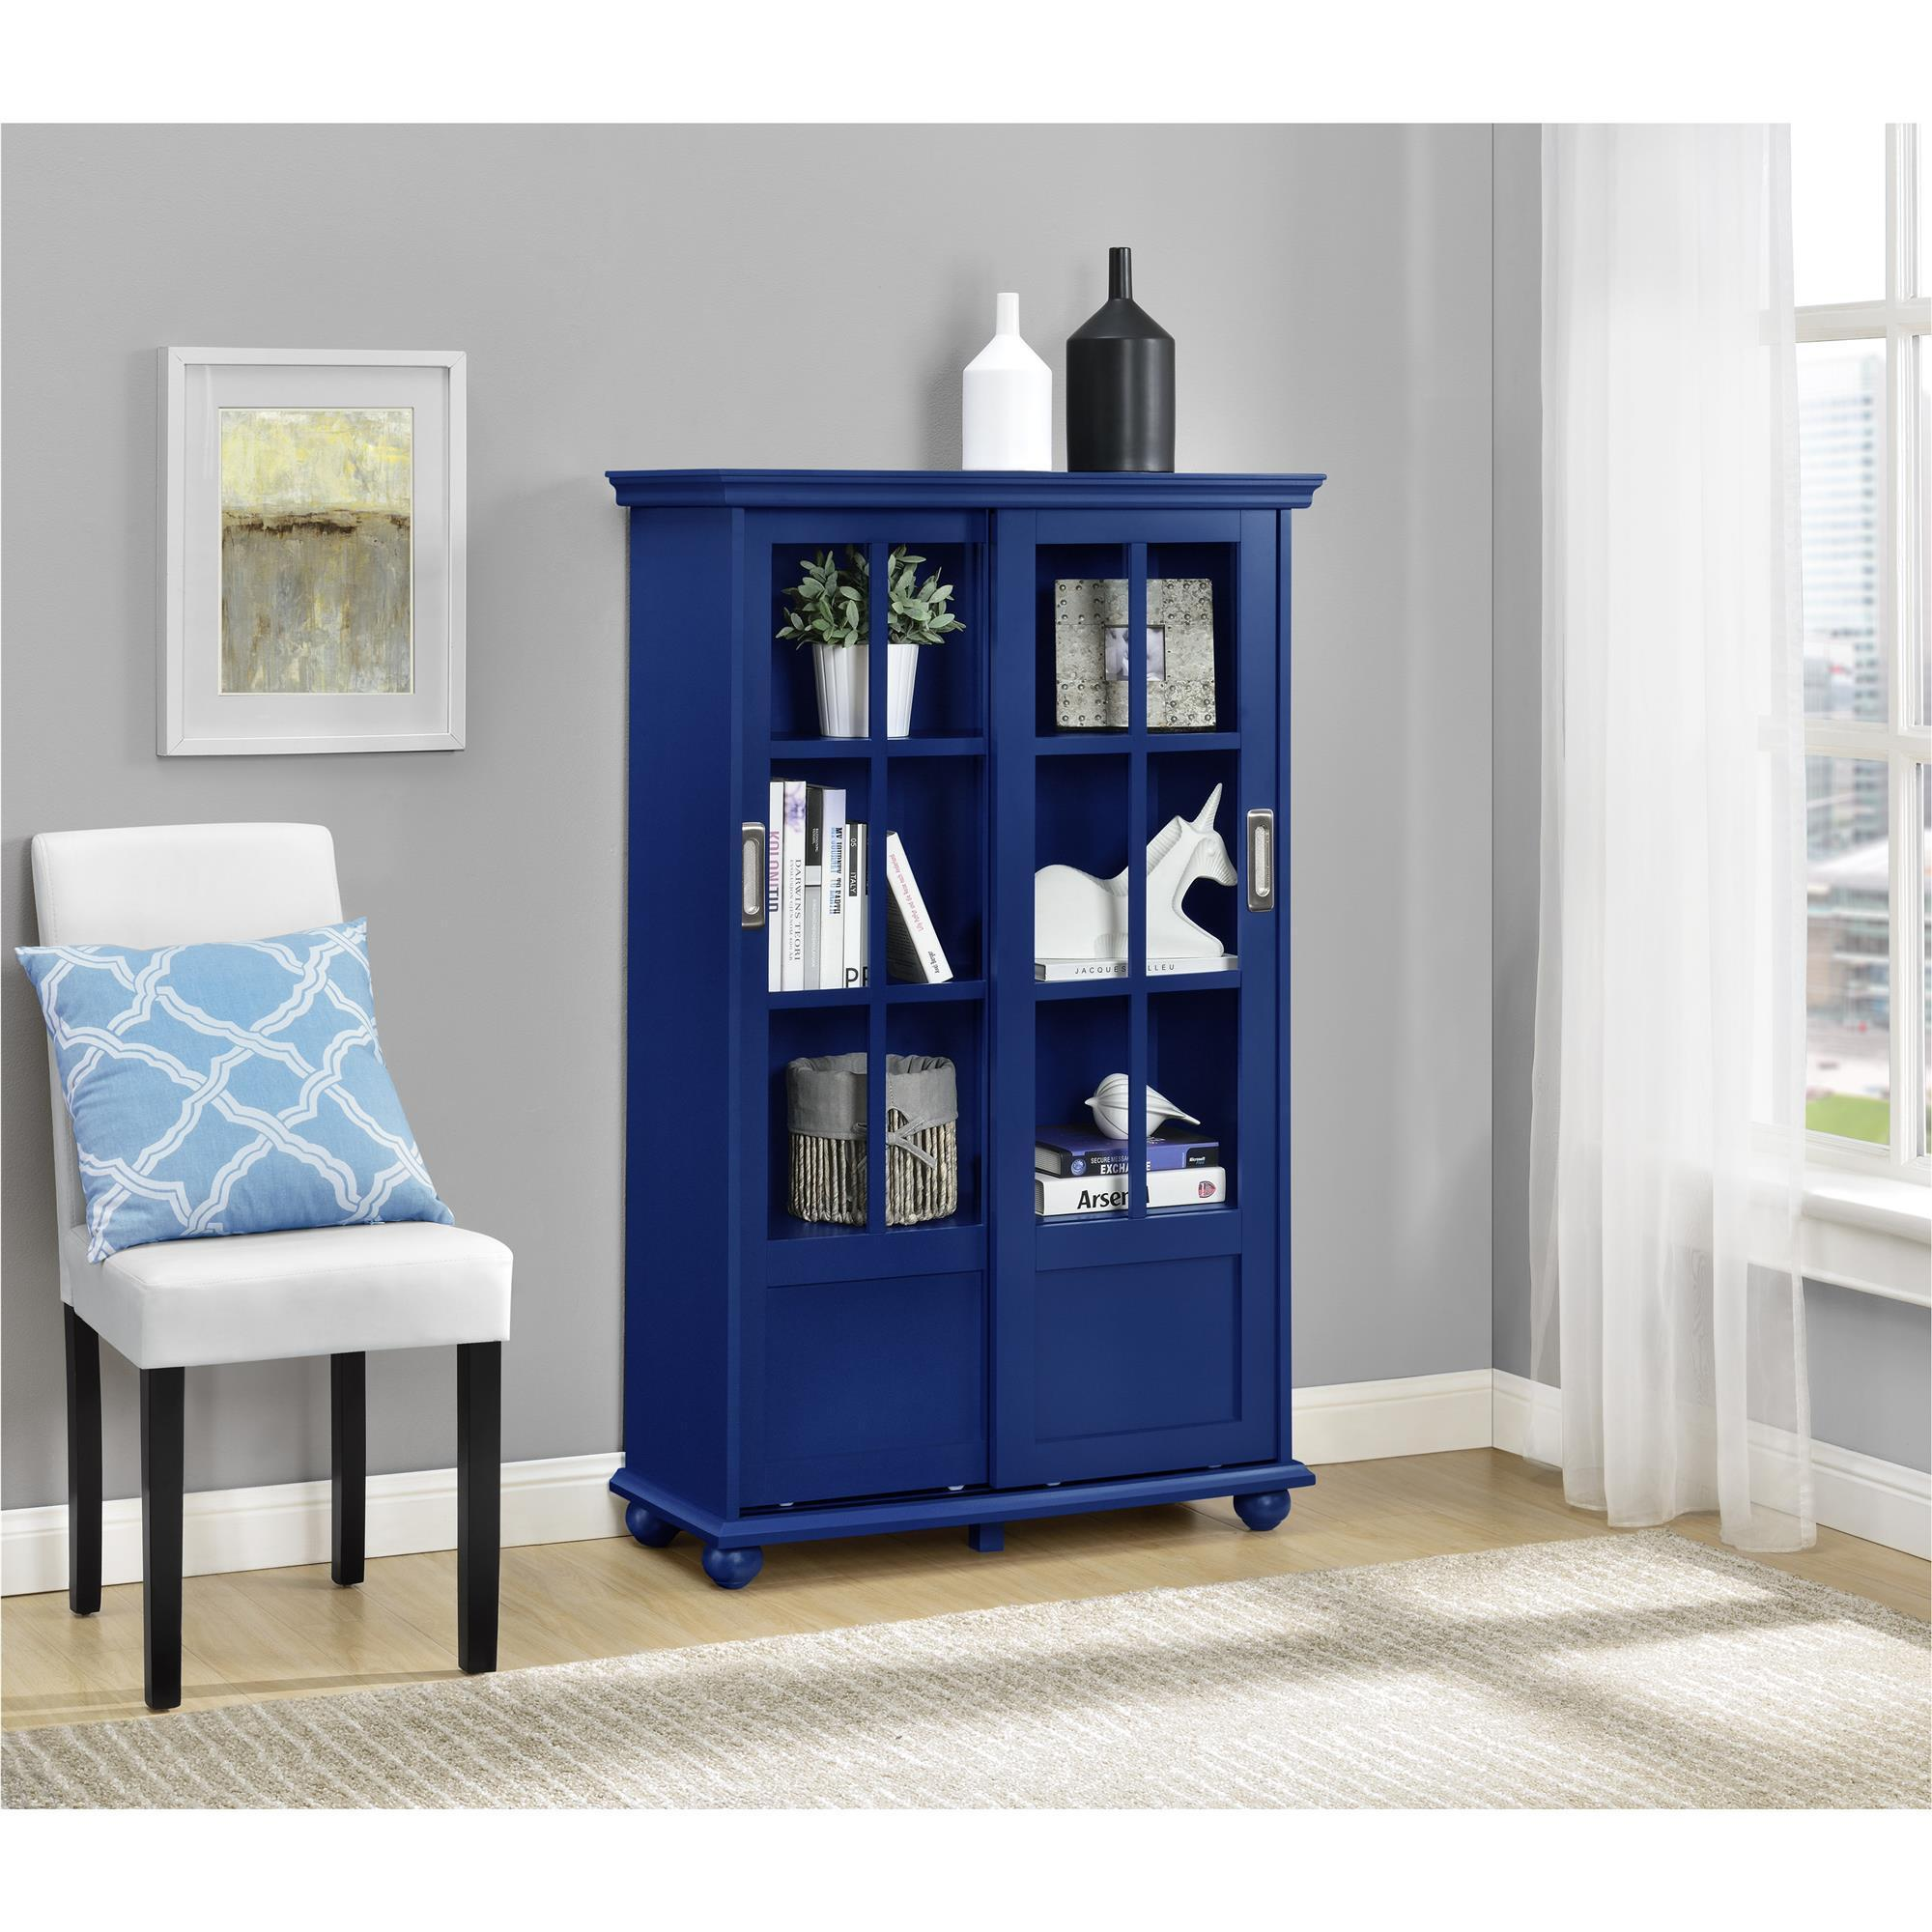 Shop Ameriwood Home Aaron Lane Blue Bookcase With Sliding Glass